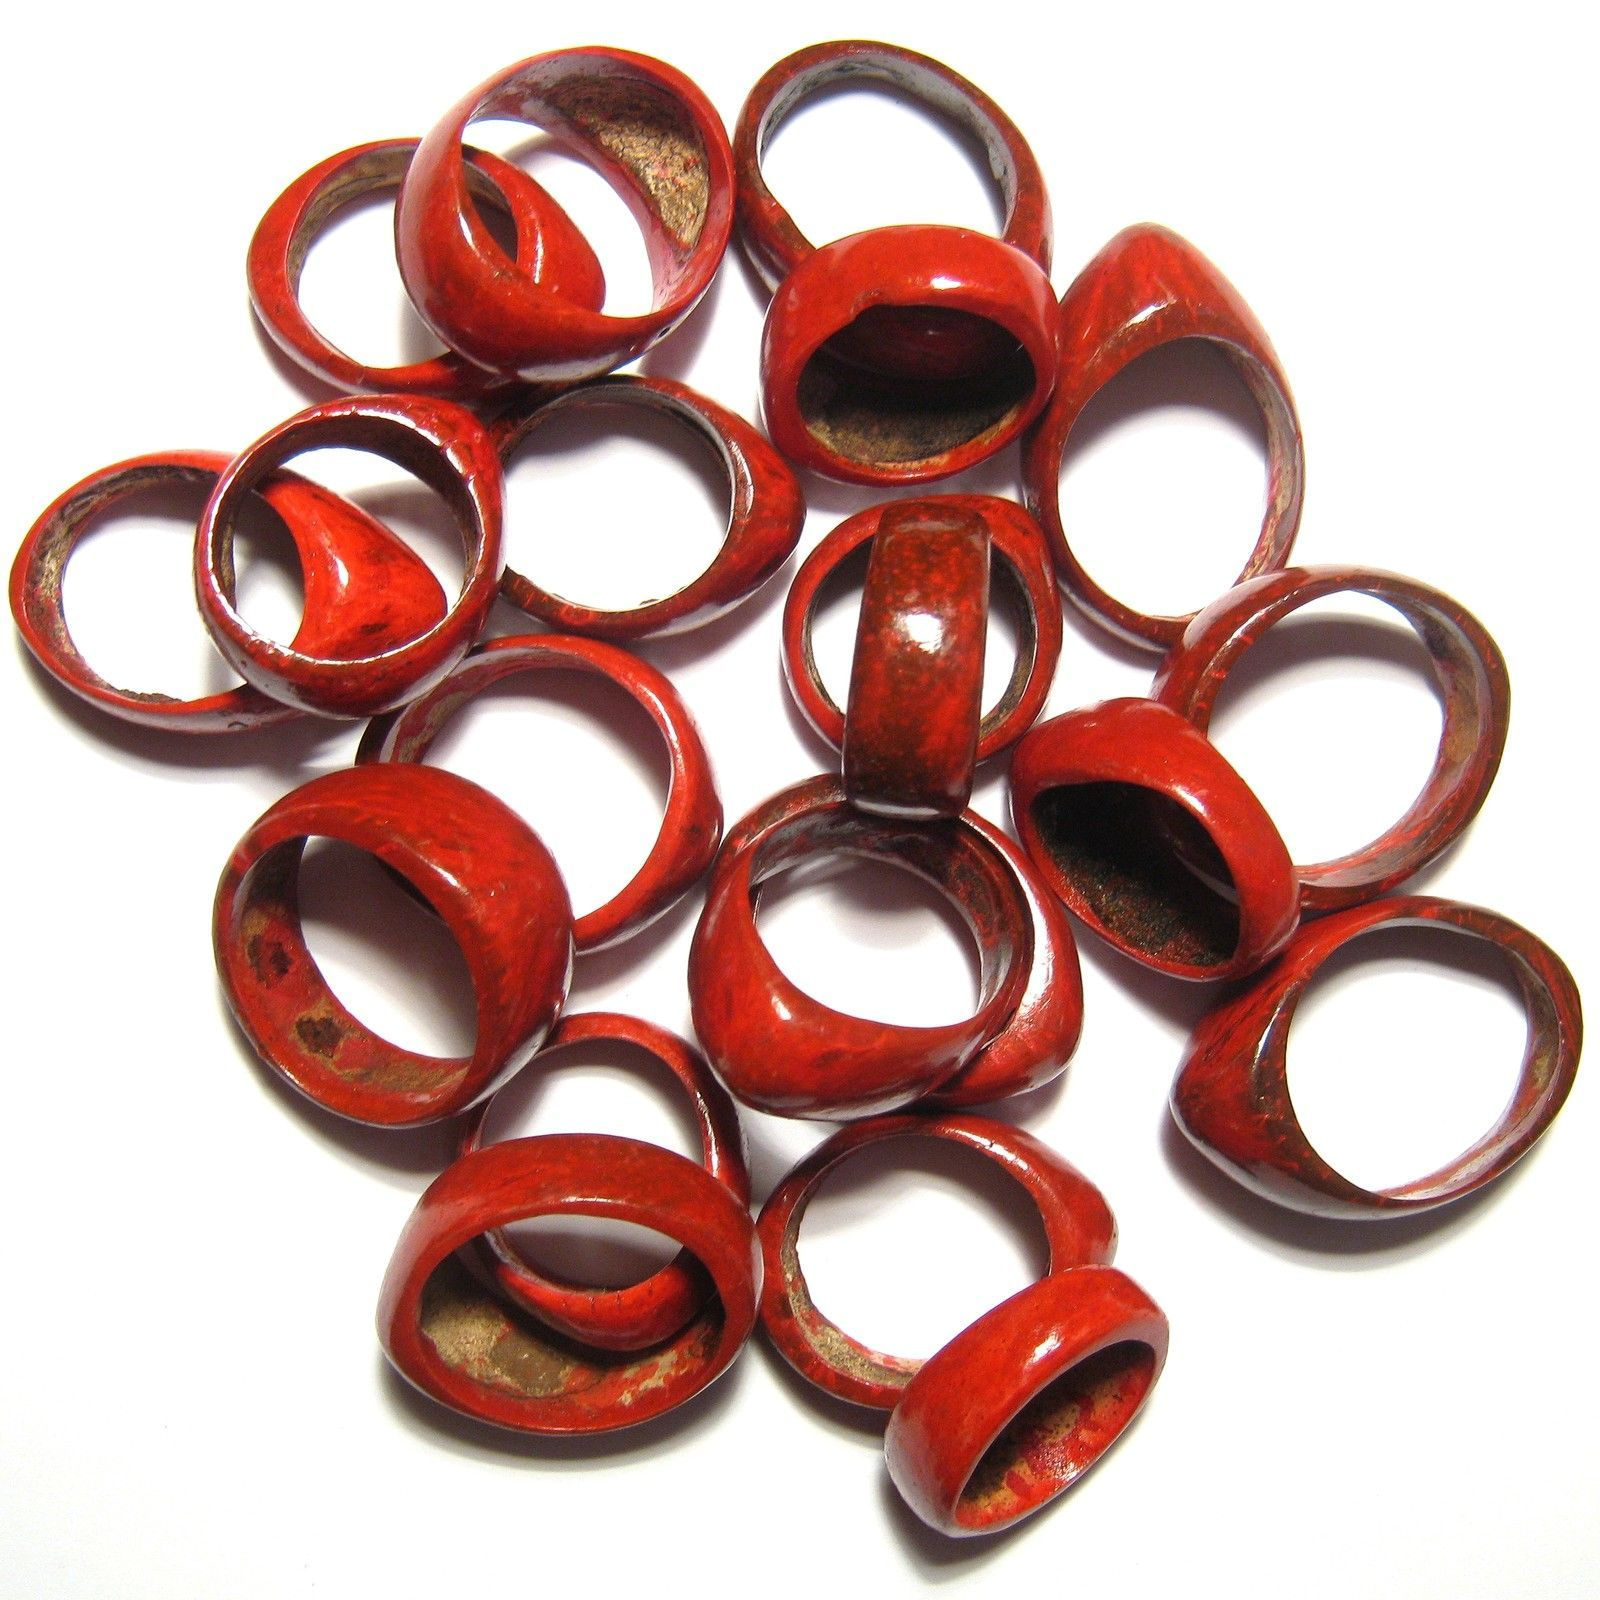 Primary image for QTY. 100 RED COLOURED COCONUT SHELL WOOD RINGS NUT SEED WHOLESALE QUANTITY 100